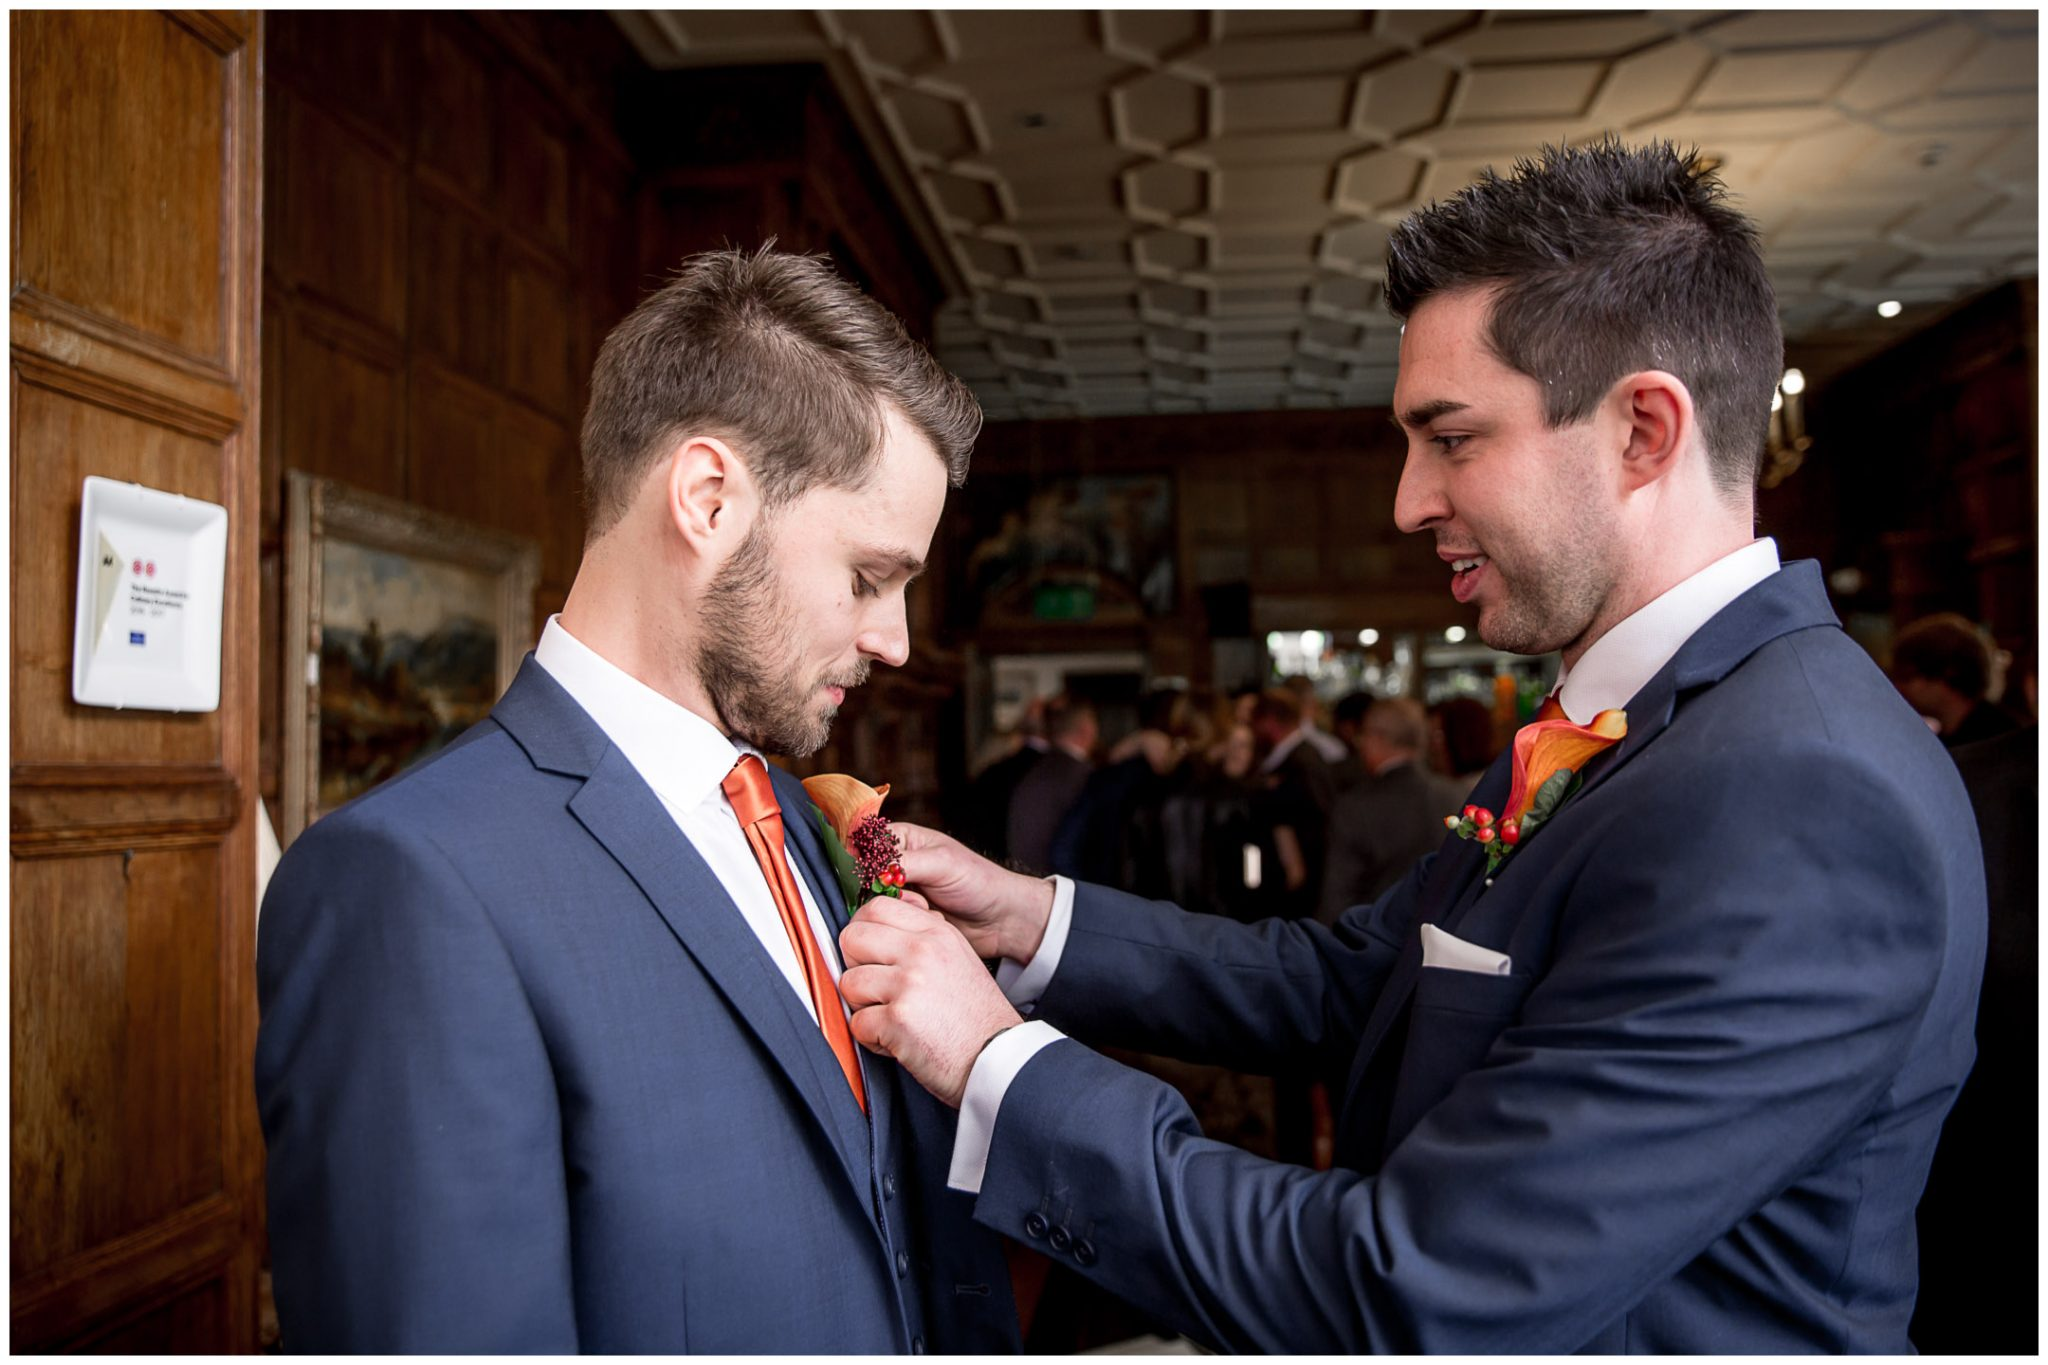 Audleys Wood wedding photograhy groom and best man before ceremony